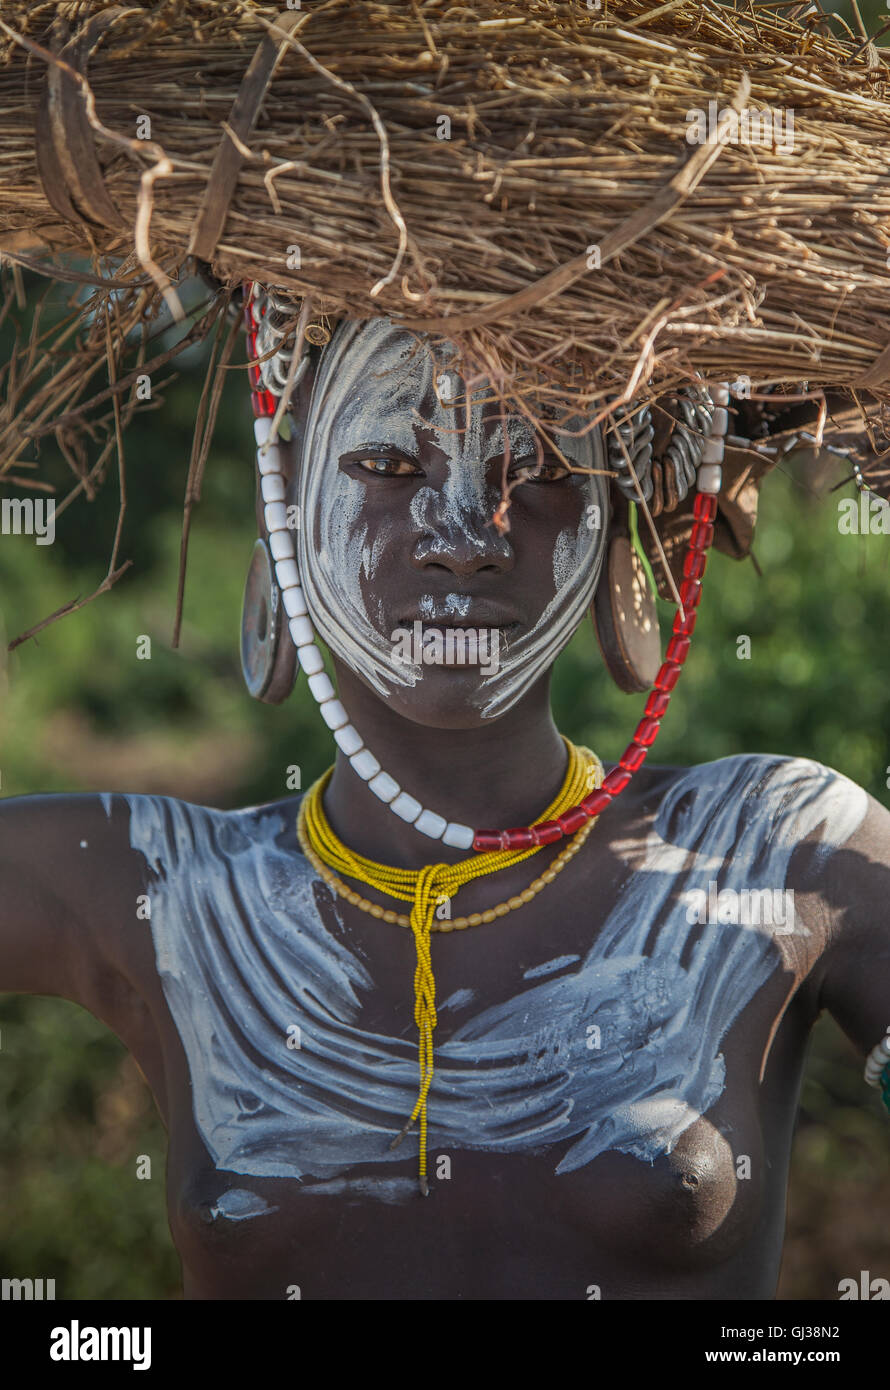 Woman of the Mursi Tribe, Omo Valley, Ethiopia - Stock Image